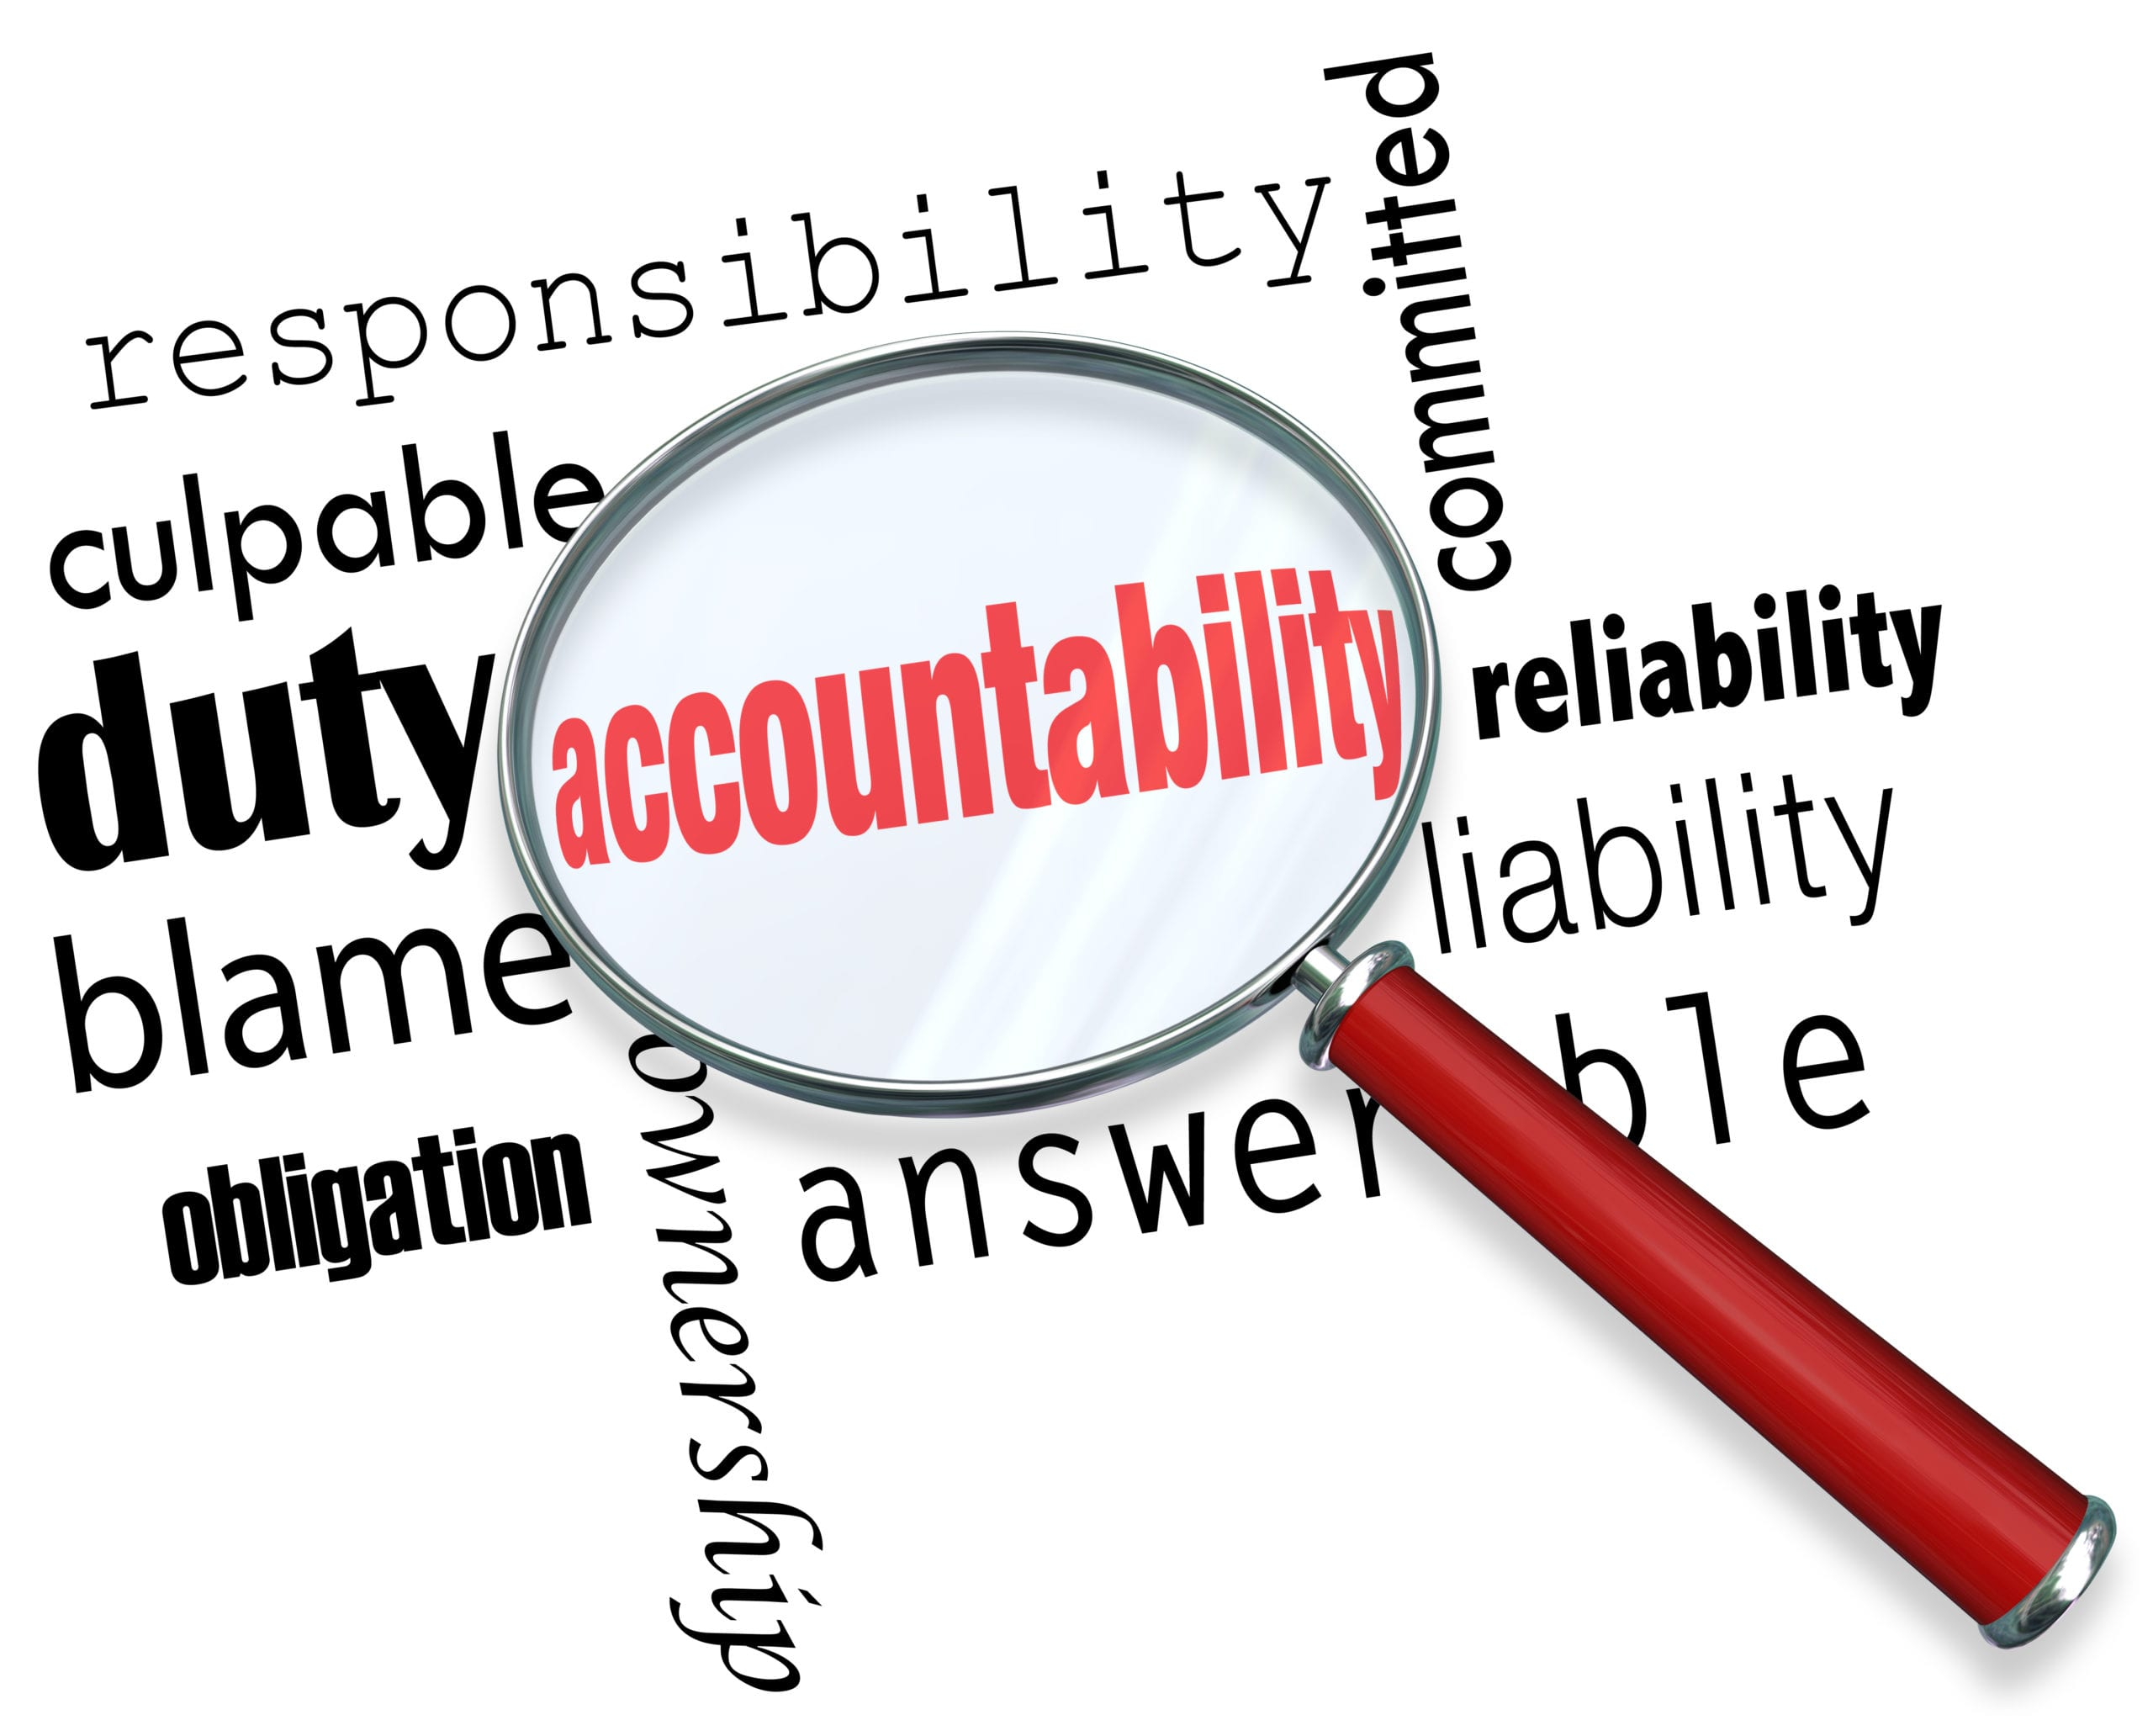 Accountability in the workplace – a lost cause or a real opportunity?